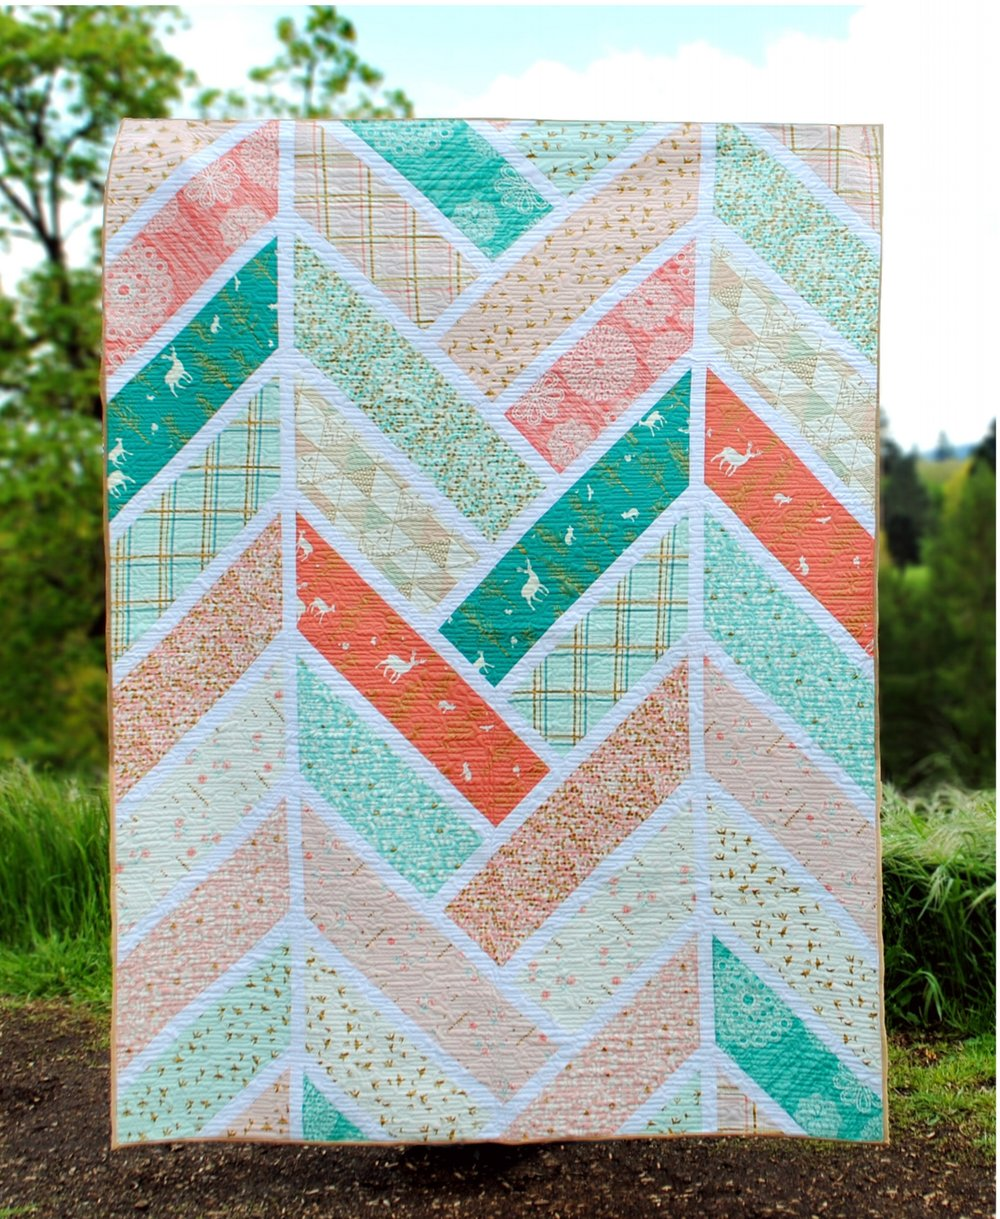 Fabric used is the Mint/Blossom colorway from Brambleberry Ridge by Violet Craft for Michael Miller Fabrics.